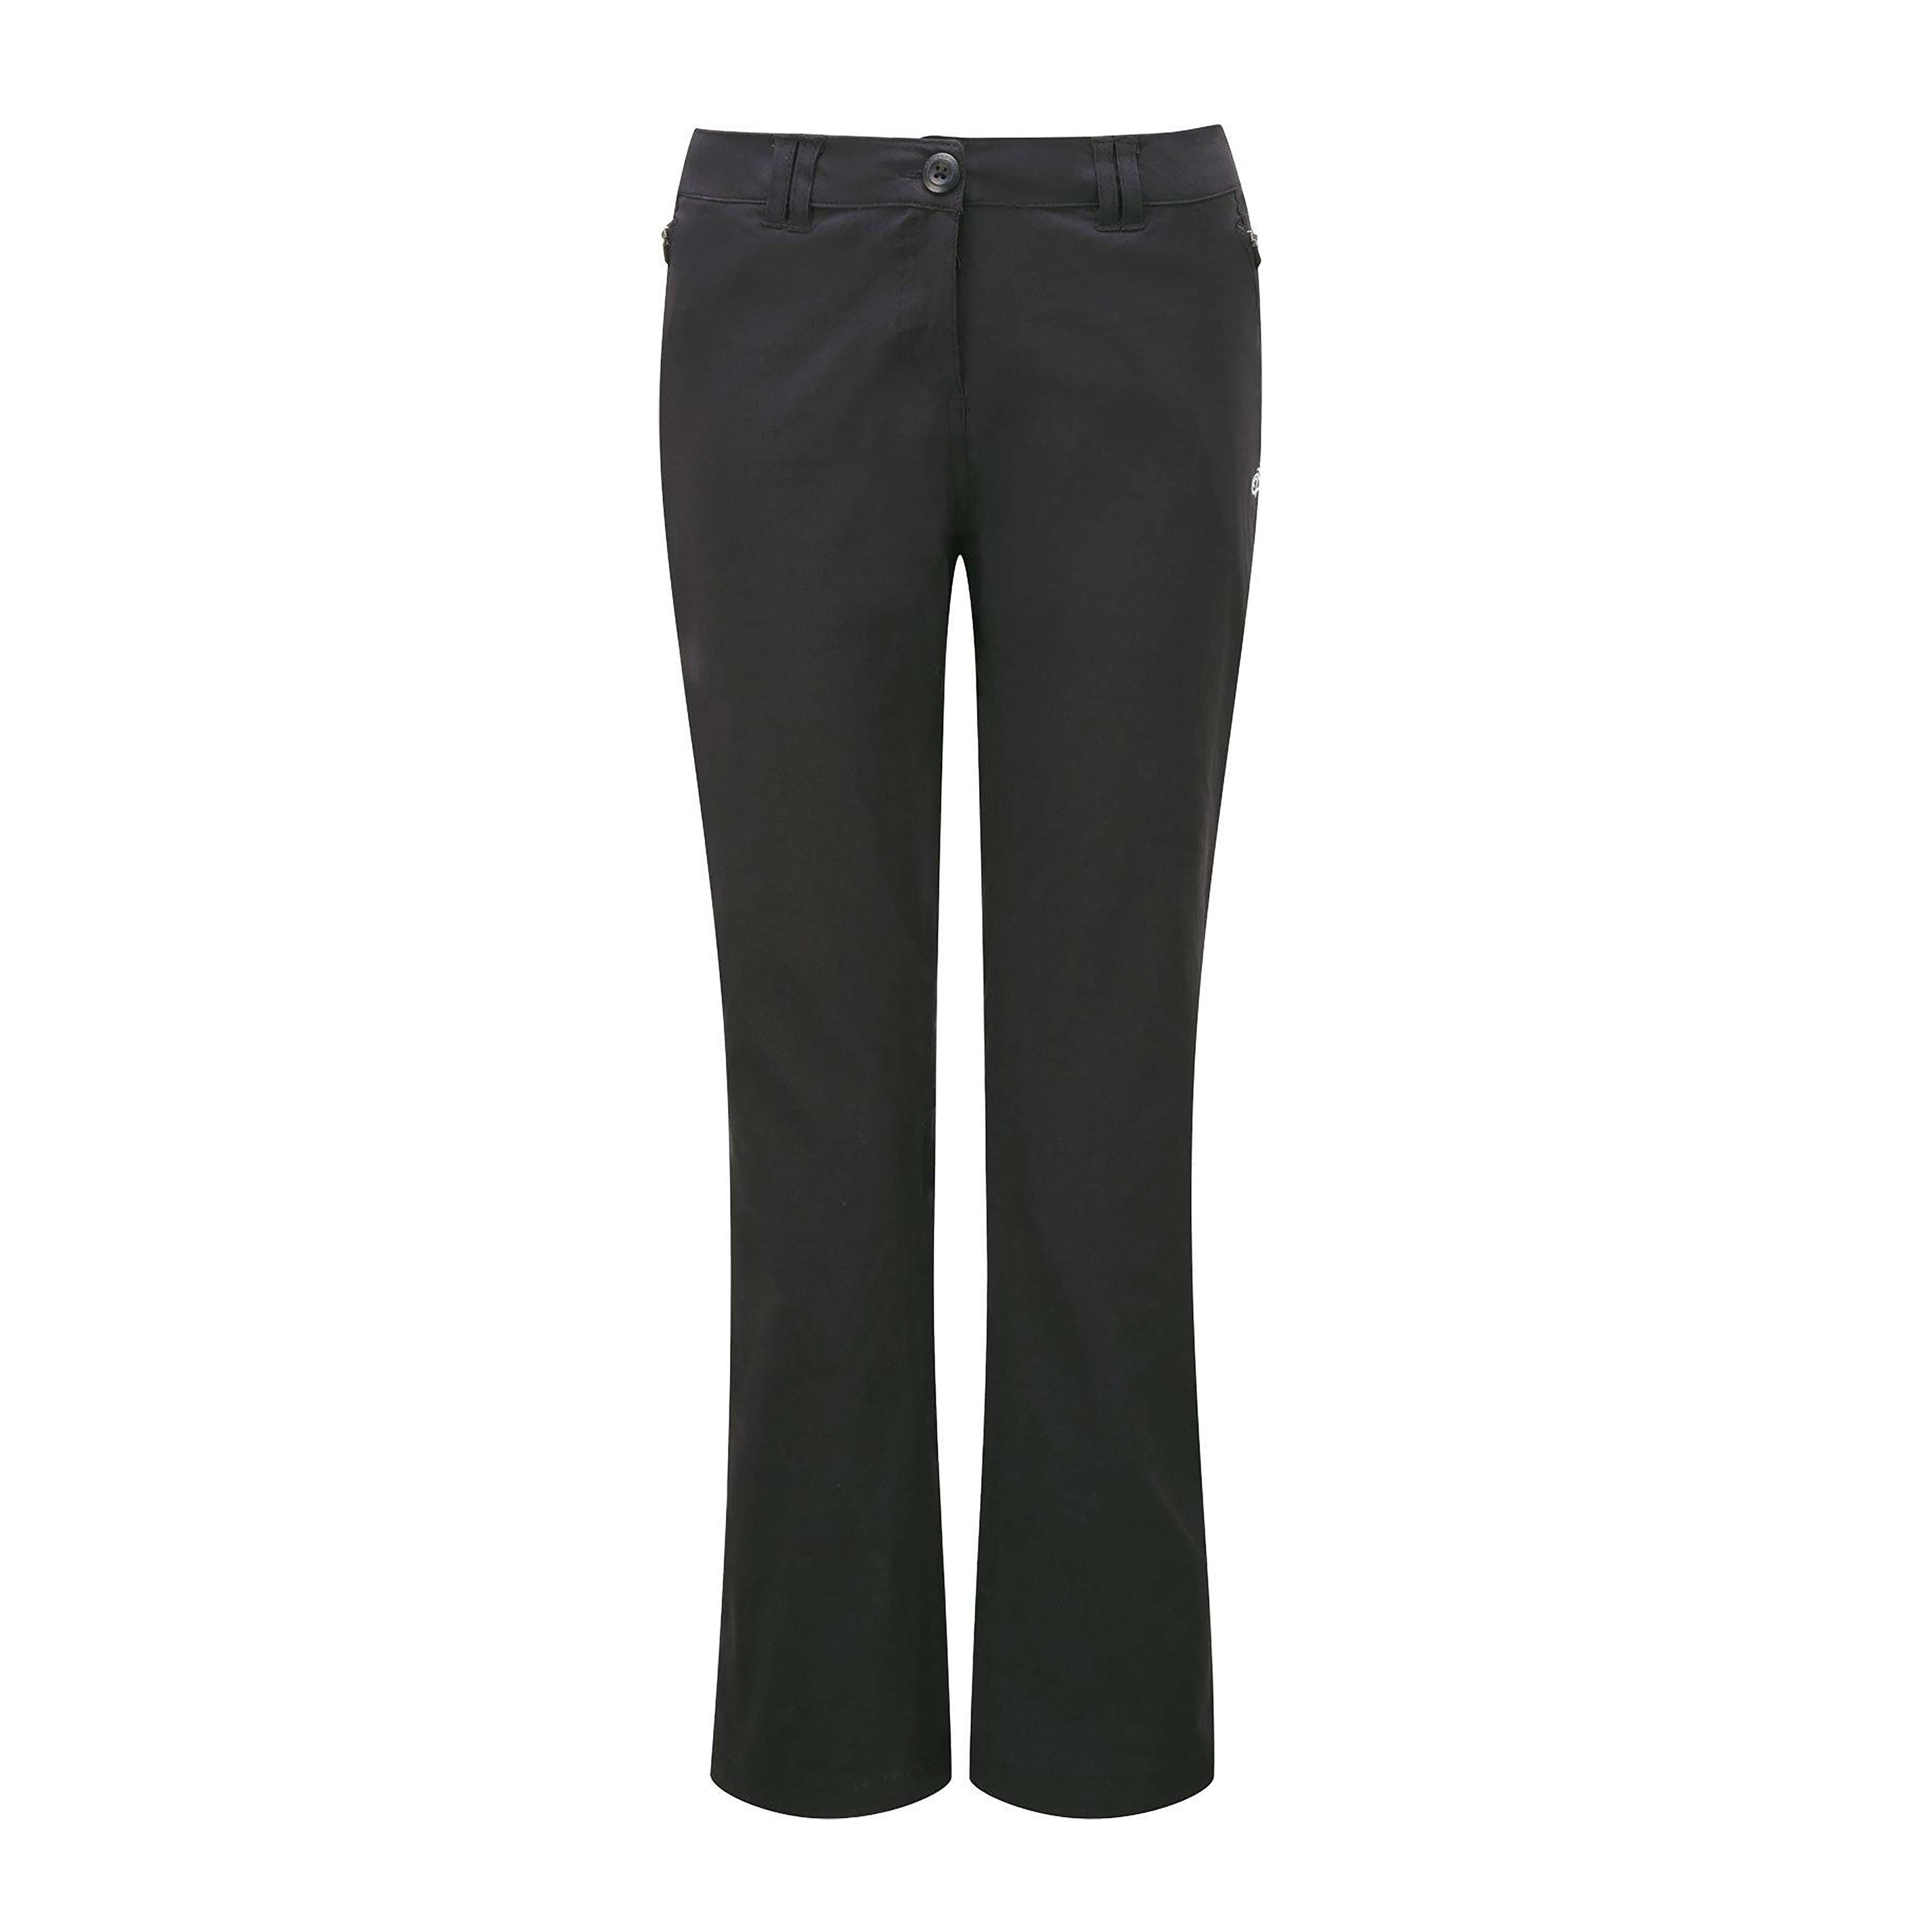 CRAGHOPPERS Women's Kiwi Pro Stretch Trousers